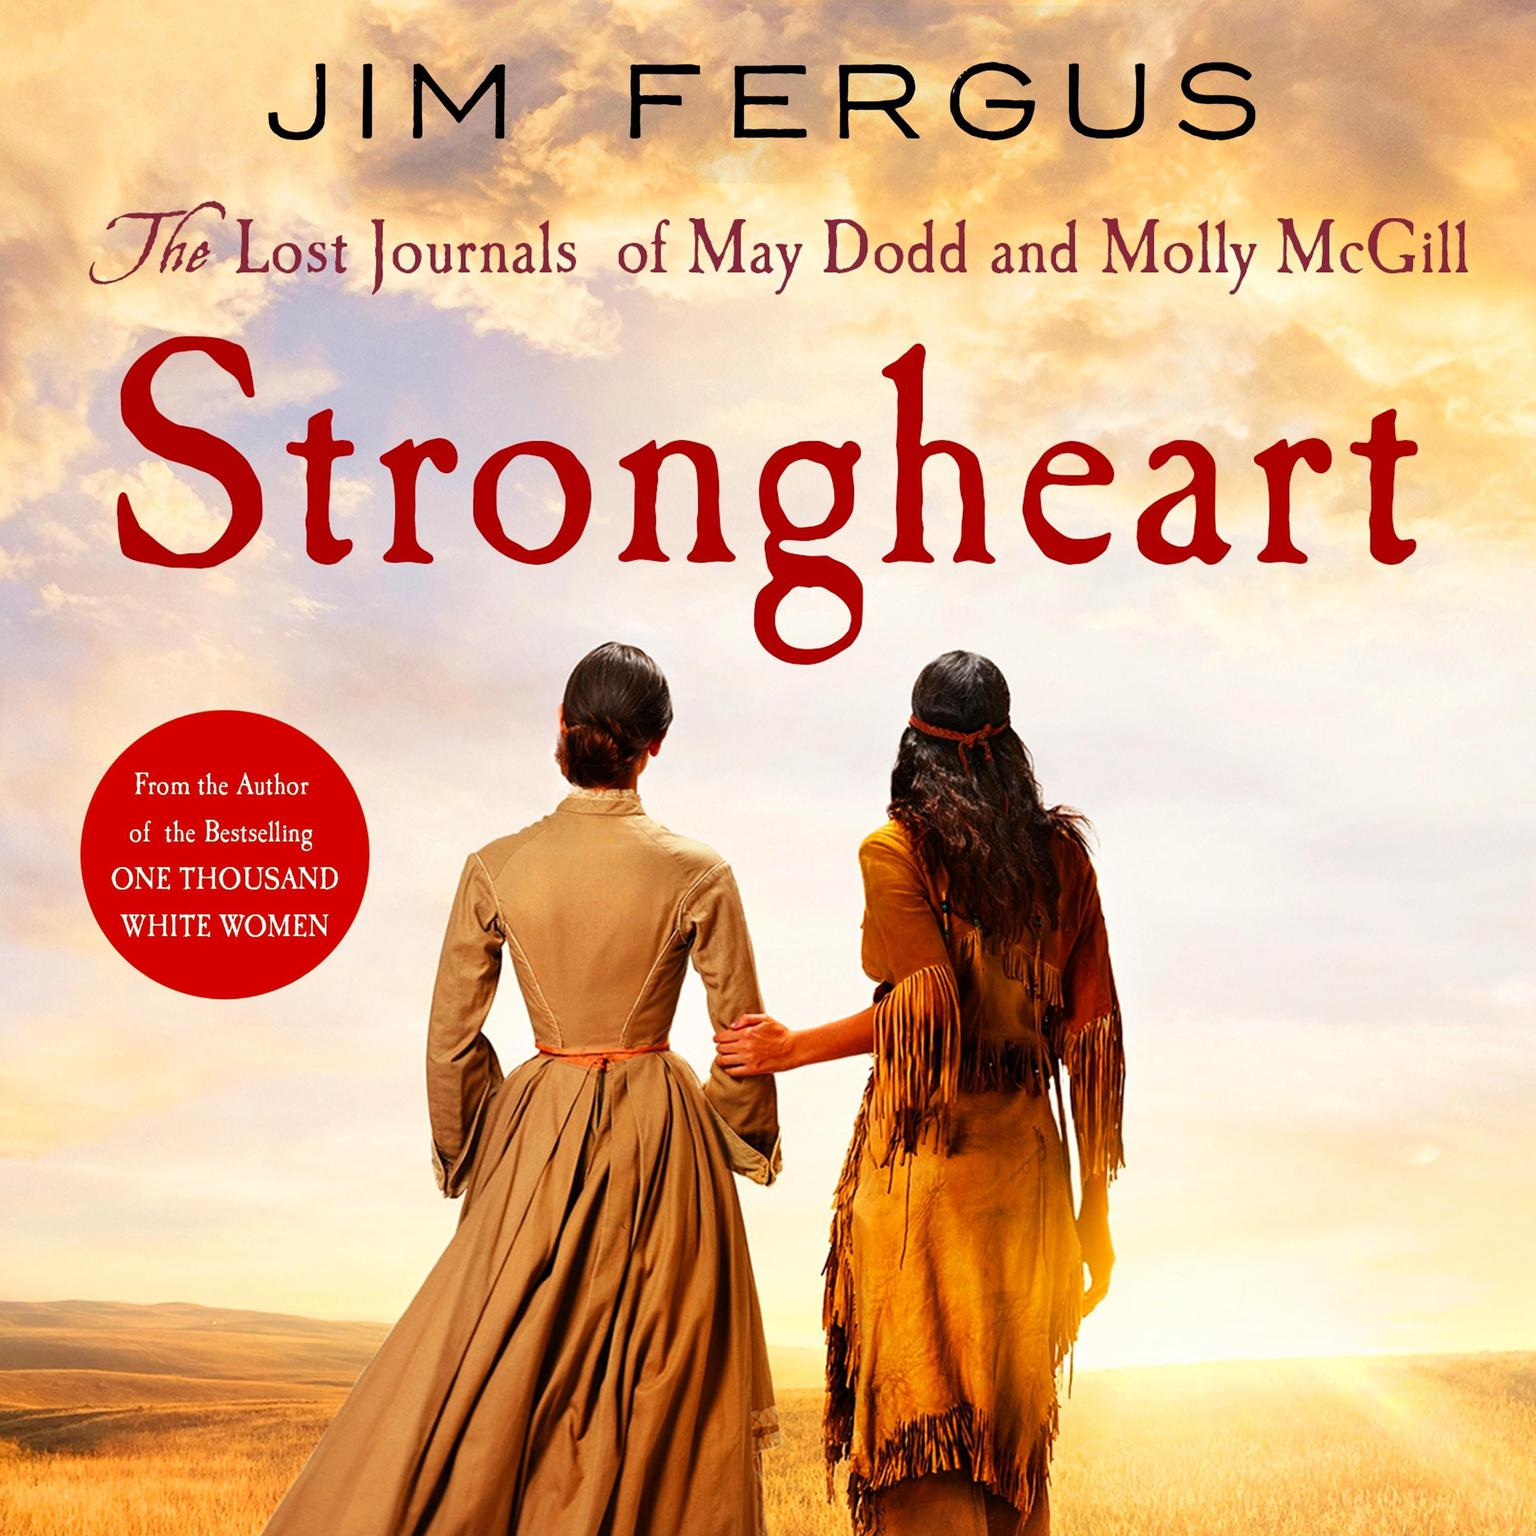 Strongheart: The Lost Journals of May Dodd and Molly McGill Audiobook, by Jim Fergus